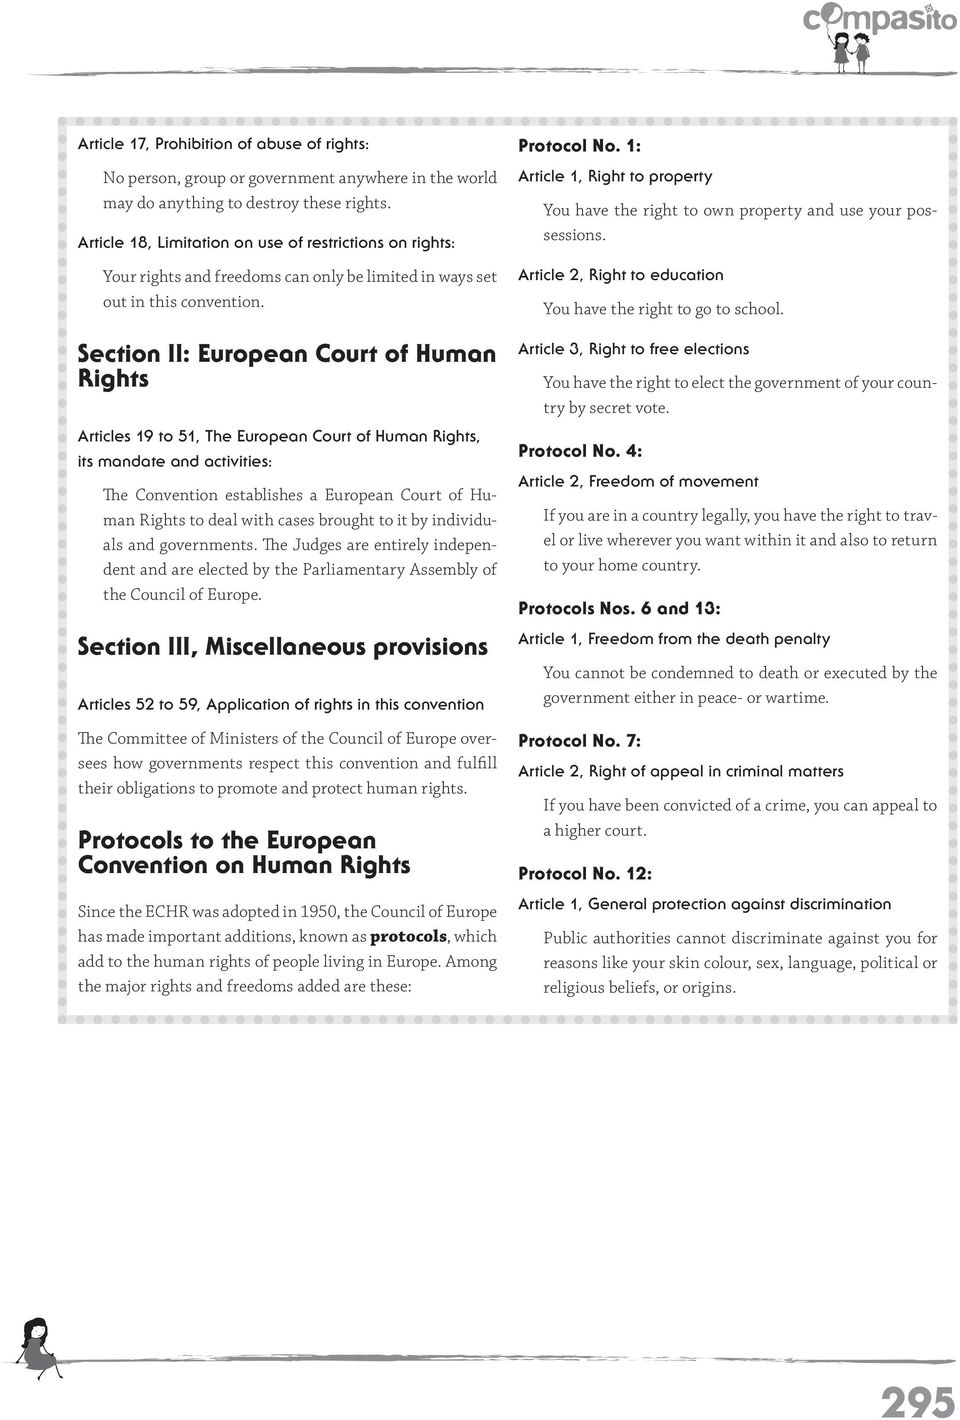 Section II: European Court of Human Rights Articles 19 to 51, The European Court of Human Rights, its mandate and activities: The Convention establishes a European Court of Human Rights to deal with